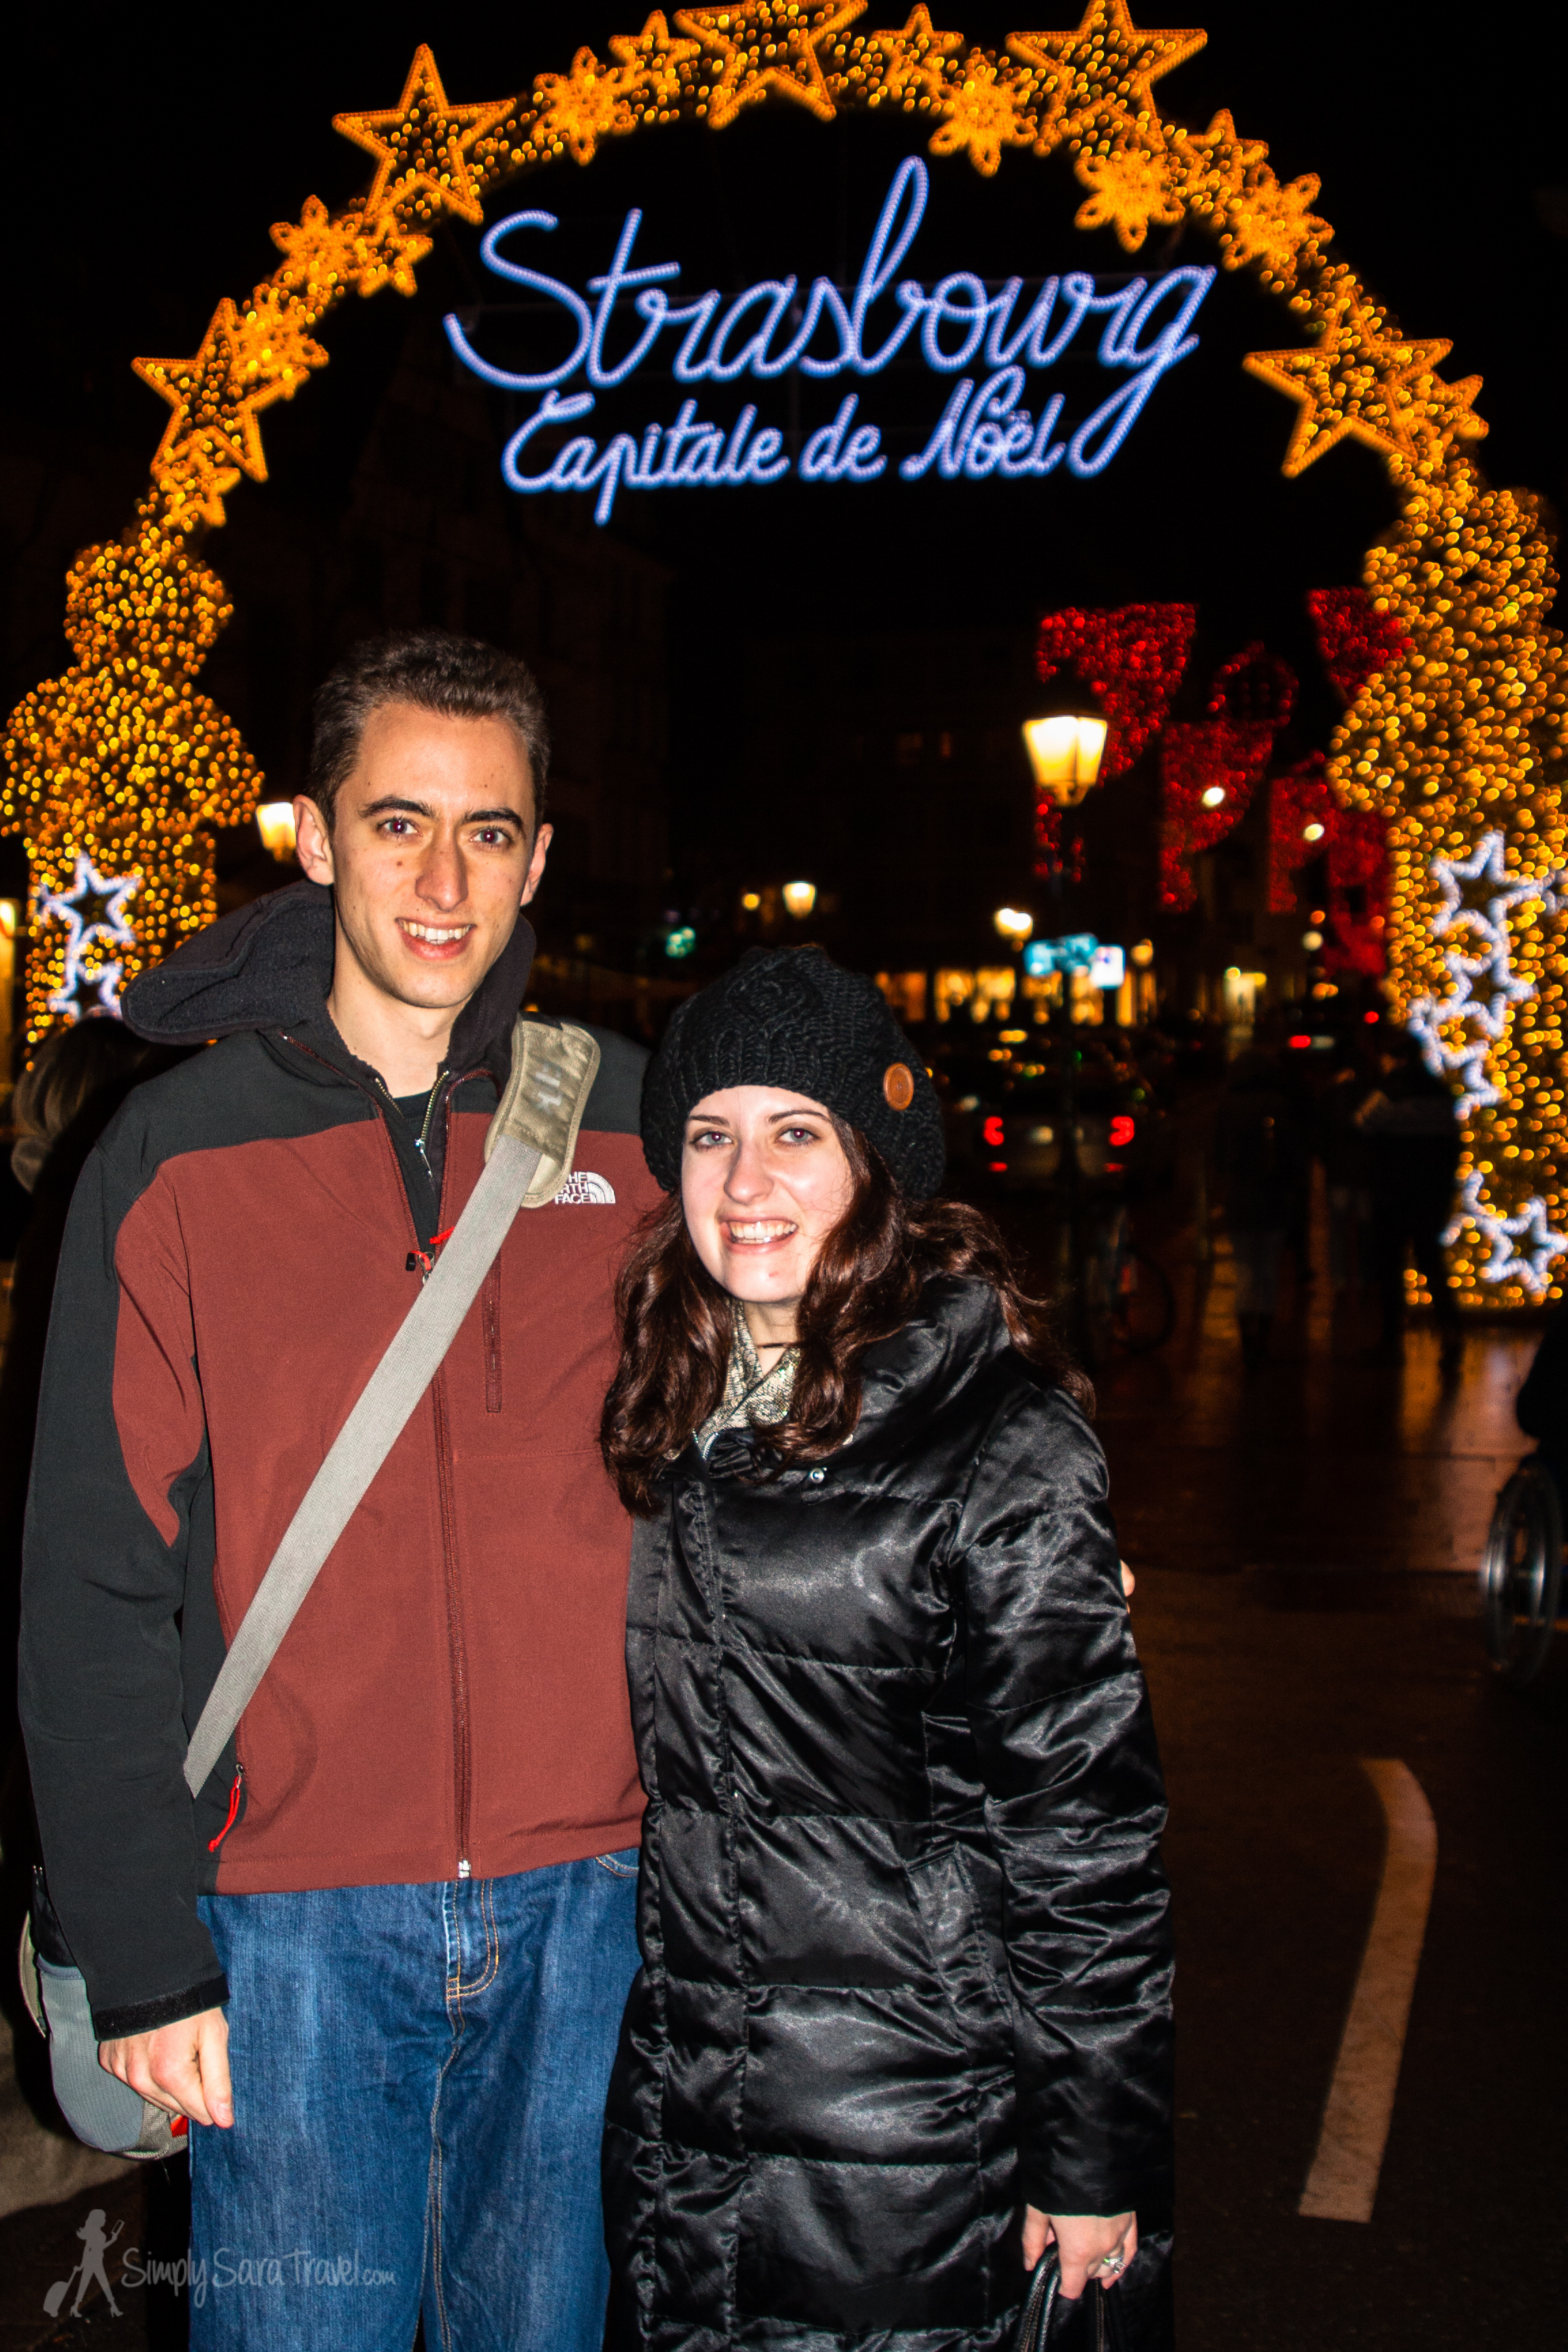 """I've seen A LOT of markets since my first Christmas market experience in Strasbourg. But in my  Ultimate European Christmas Market Round-Up , it still manged to nab the title for """"Most Decked-Out Halls"""" - no one decorates like Strasbourg!"""